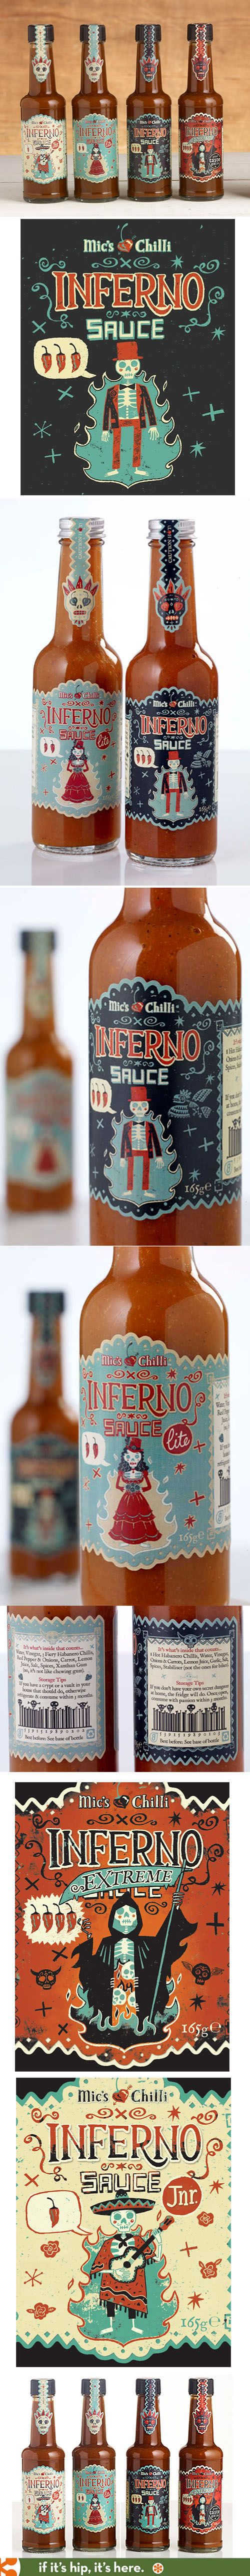 Fabulous label designs for Mic's Chilli Inferno Sauces by Steve Simpson.